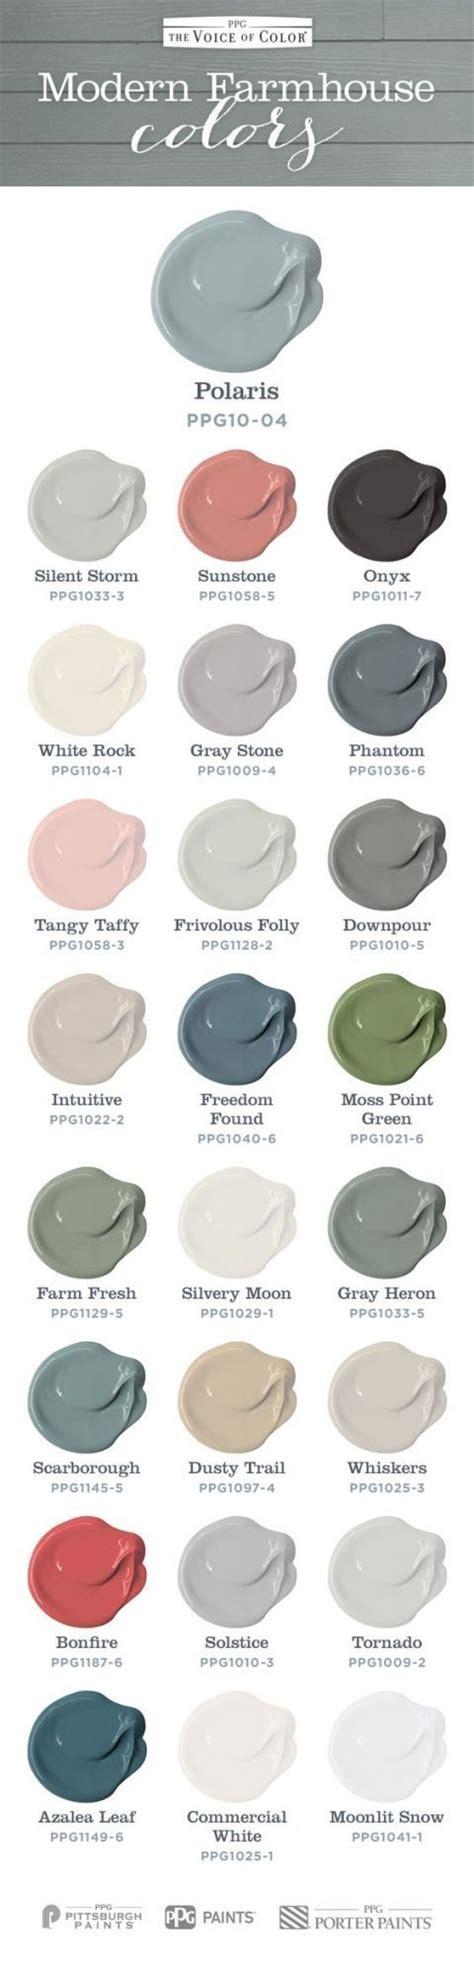 joanna gaines paint colors modern farmhouse colors from voice of color house colors